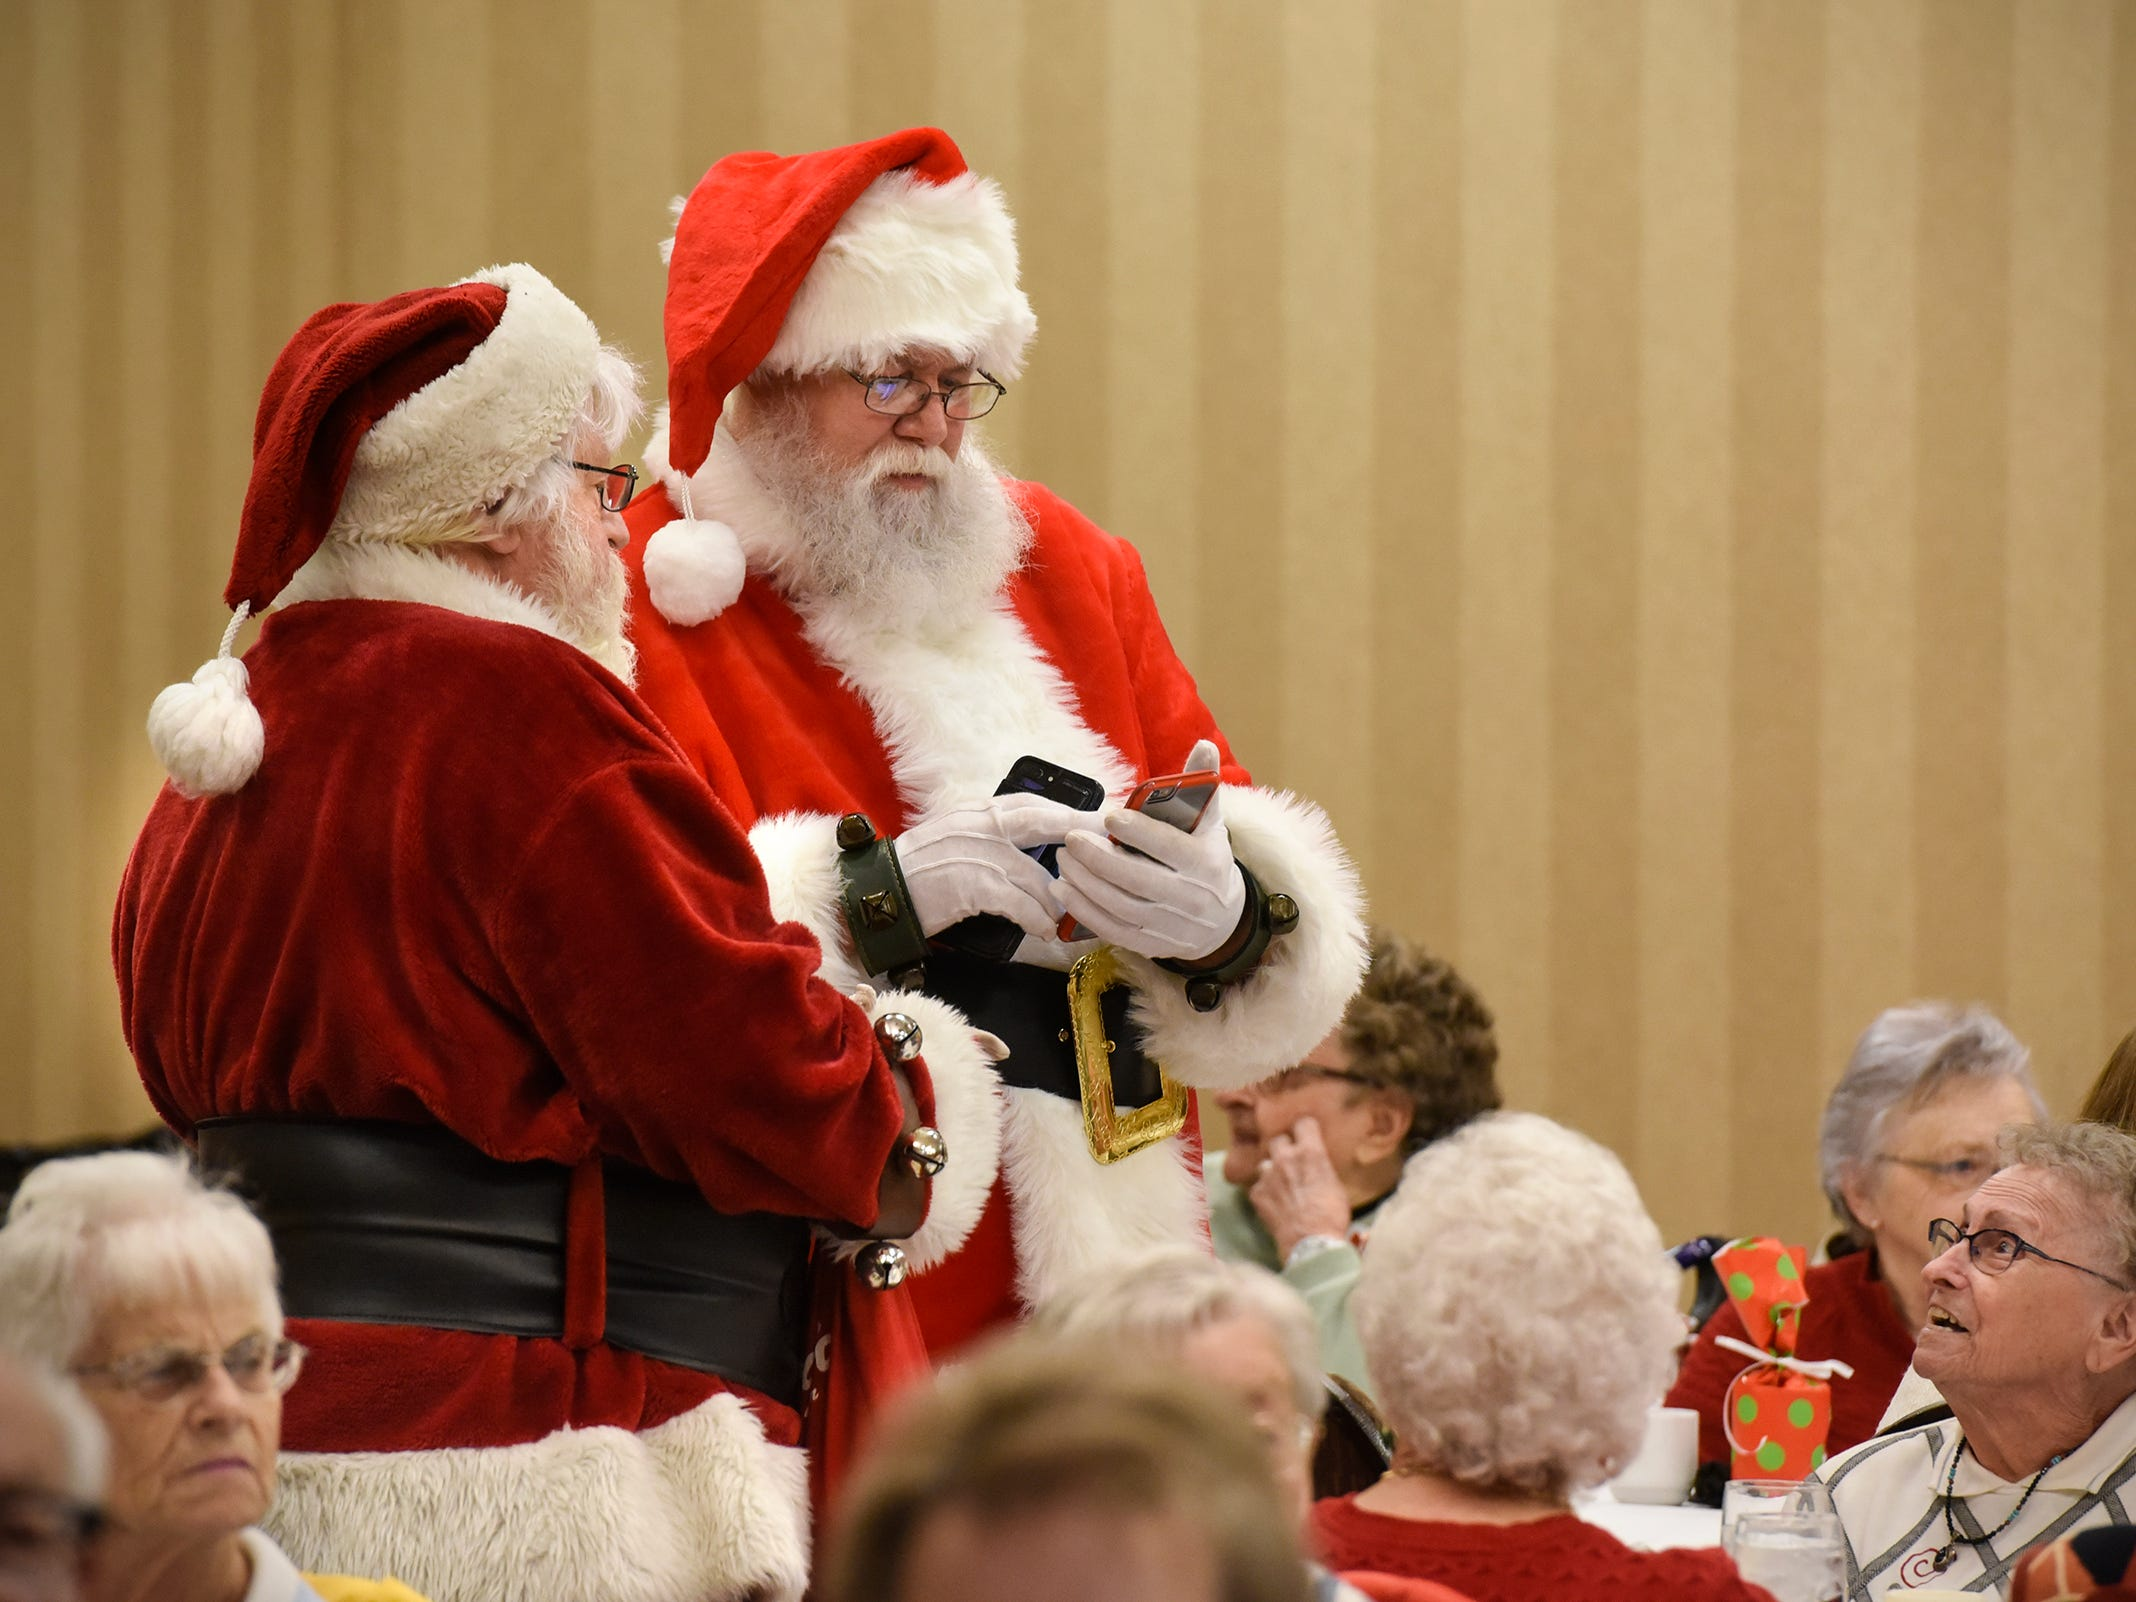 Santas juggle cell phones while taking photos with people during the Dinner with Santa event Monday, Dec. 17, in St. Cloud.